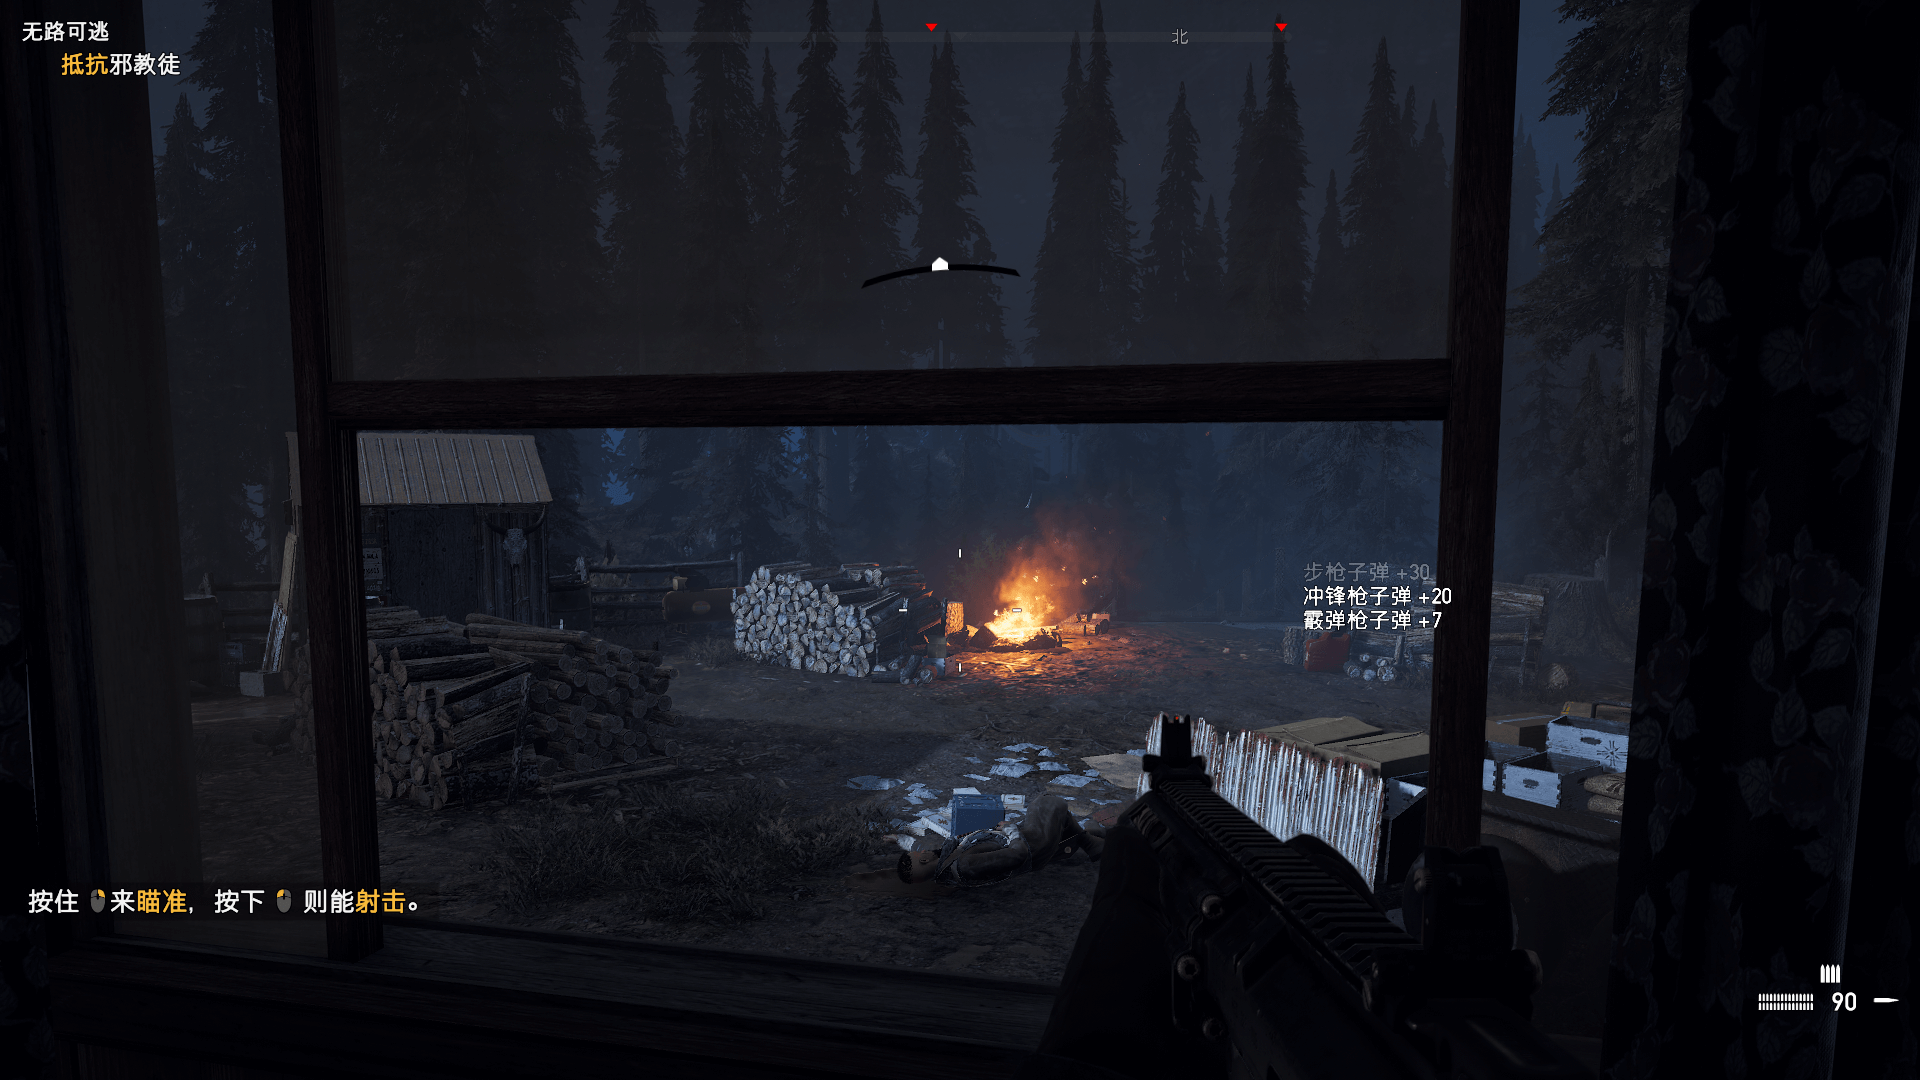 FarCry5 2020-06-20 23-41-40-21.png